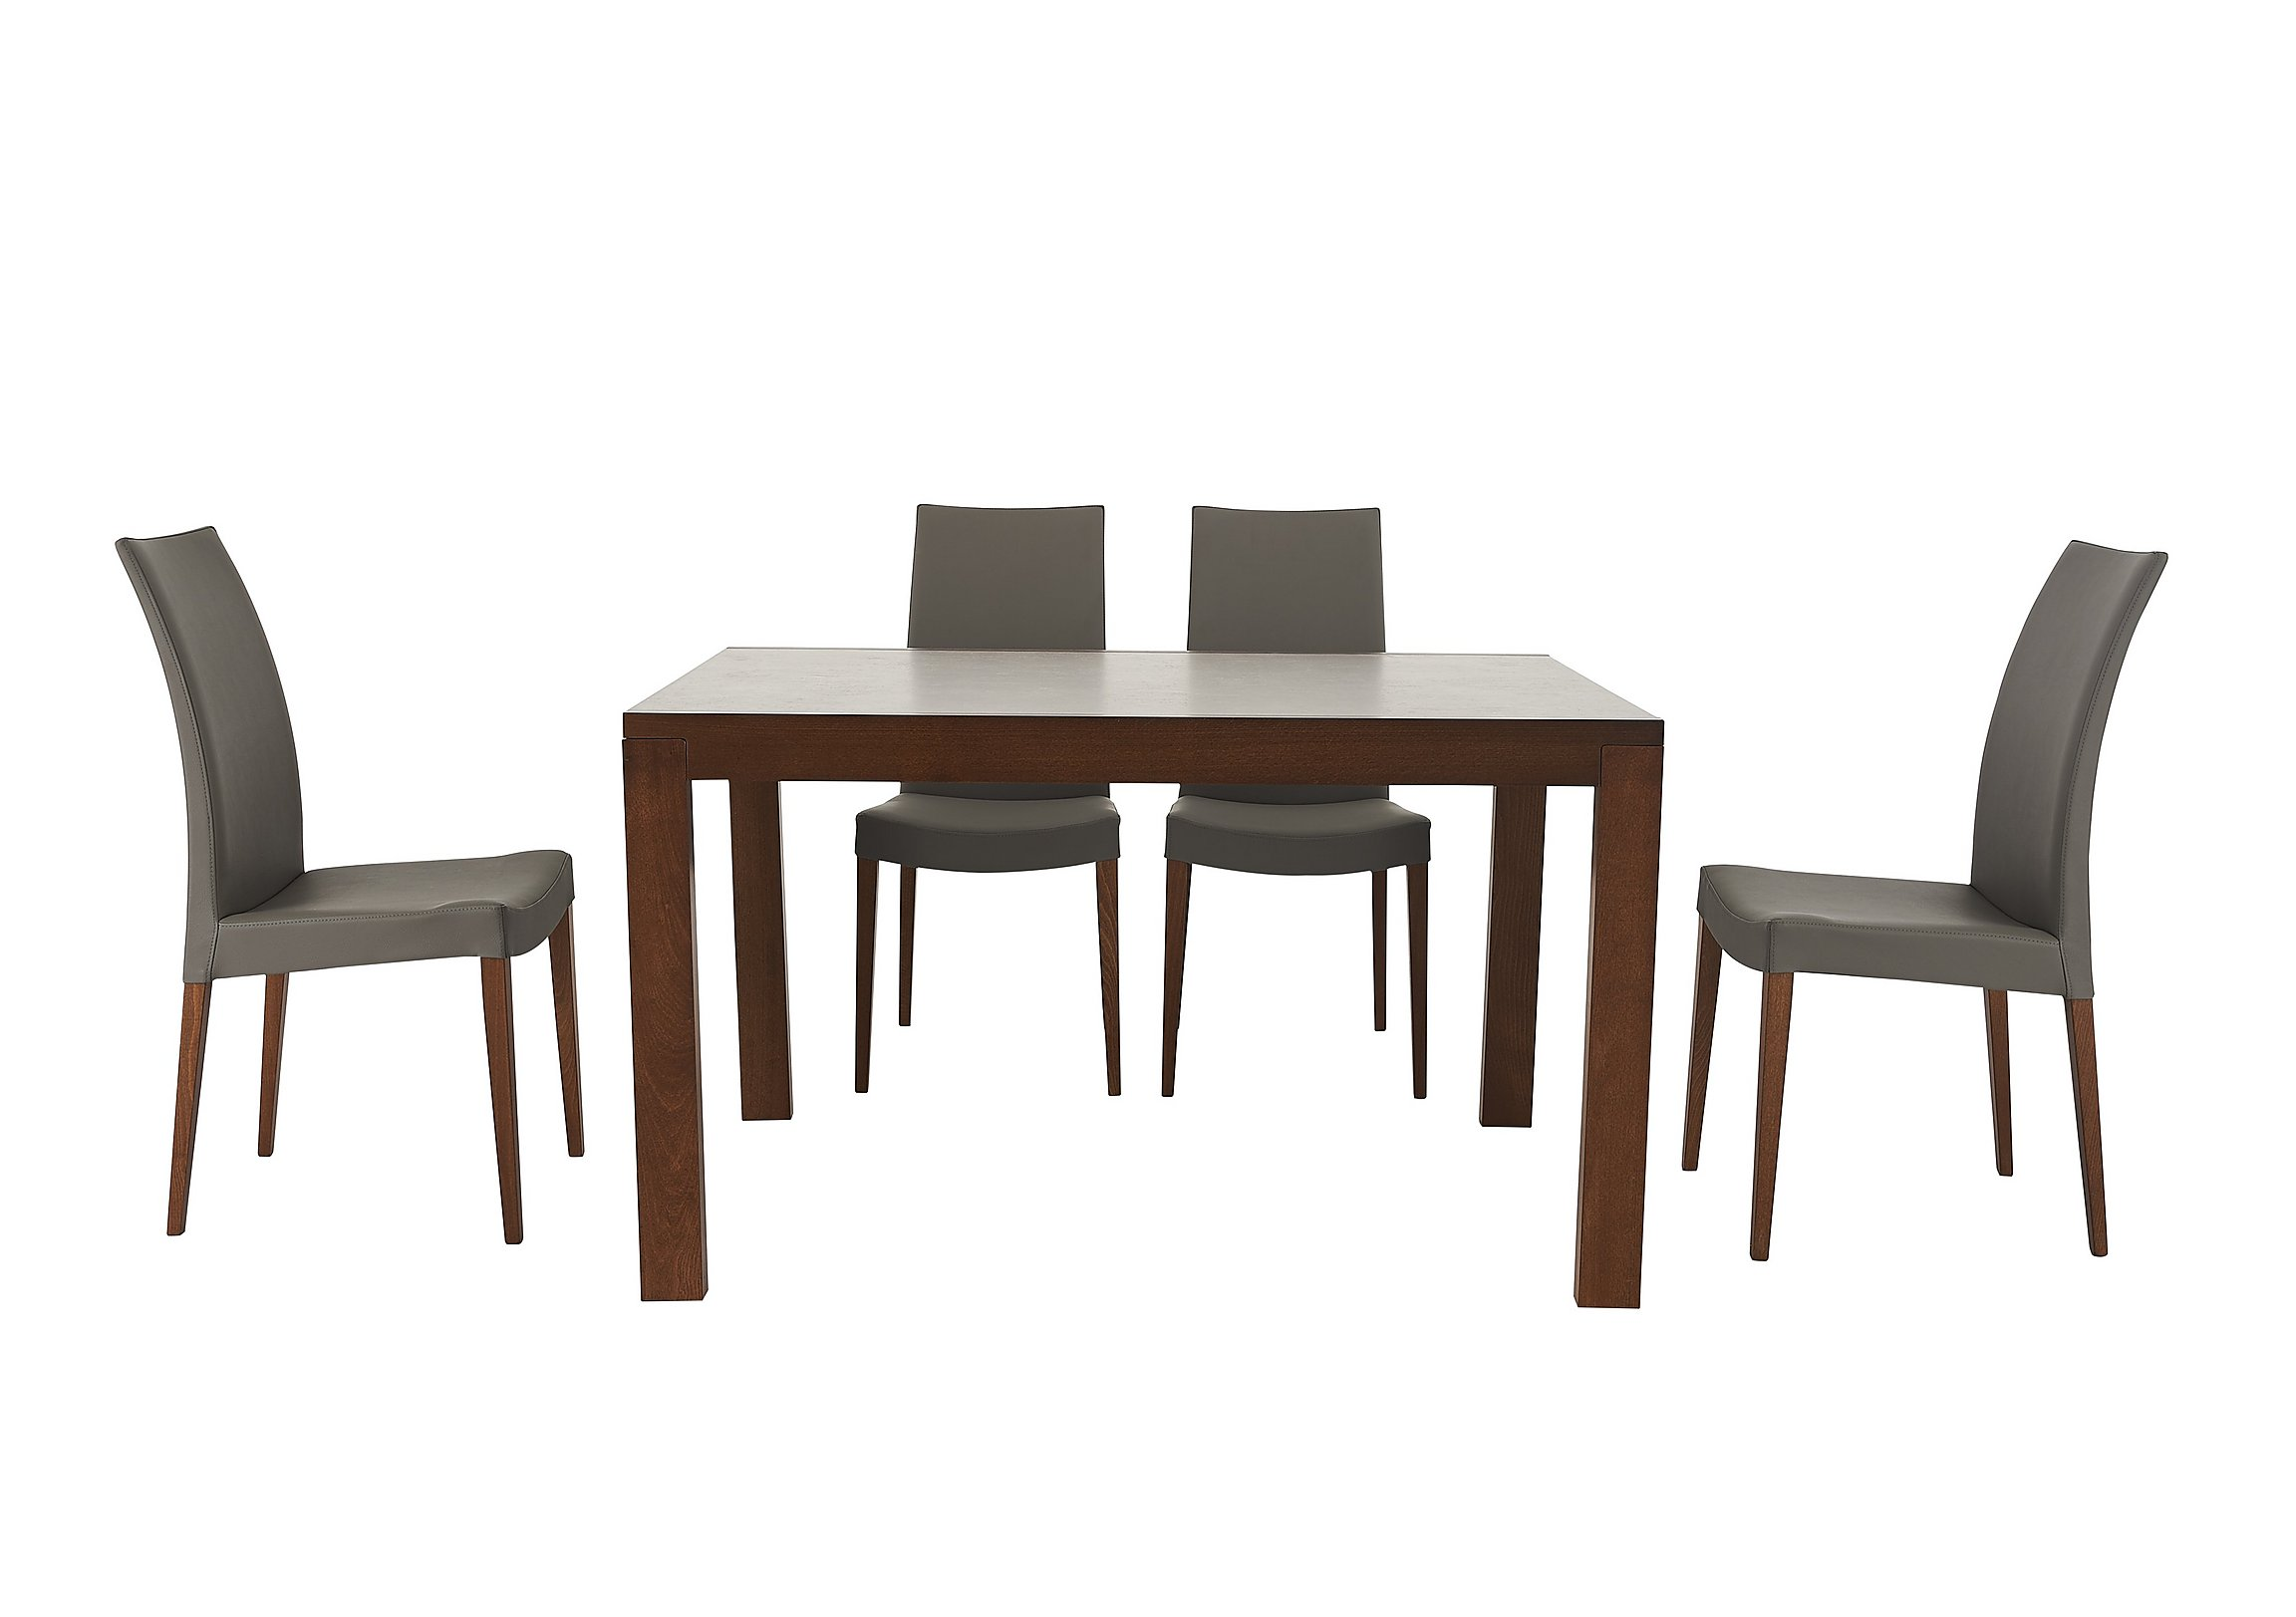 Smart Extending Dining Table with 4 Chairs - Calligaris - Furniture ...